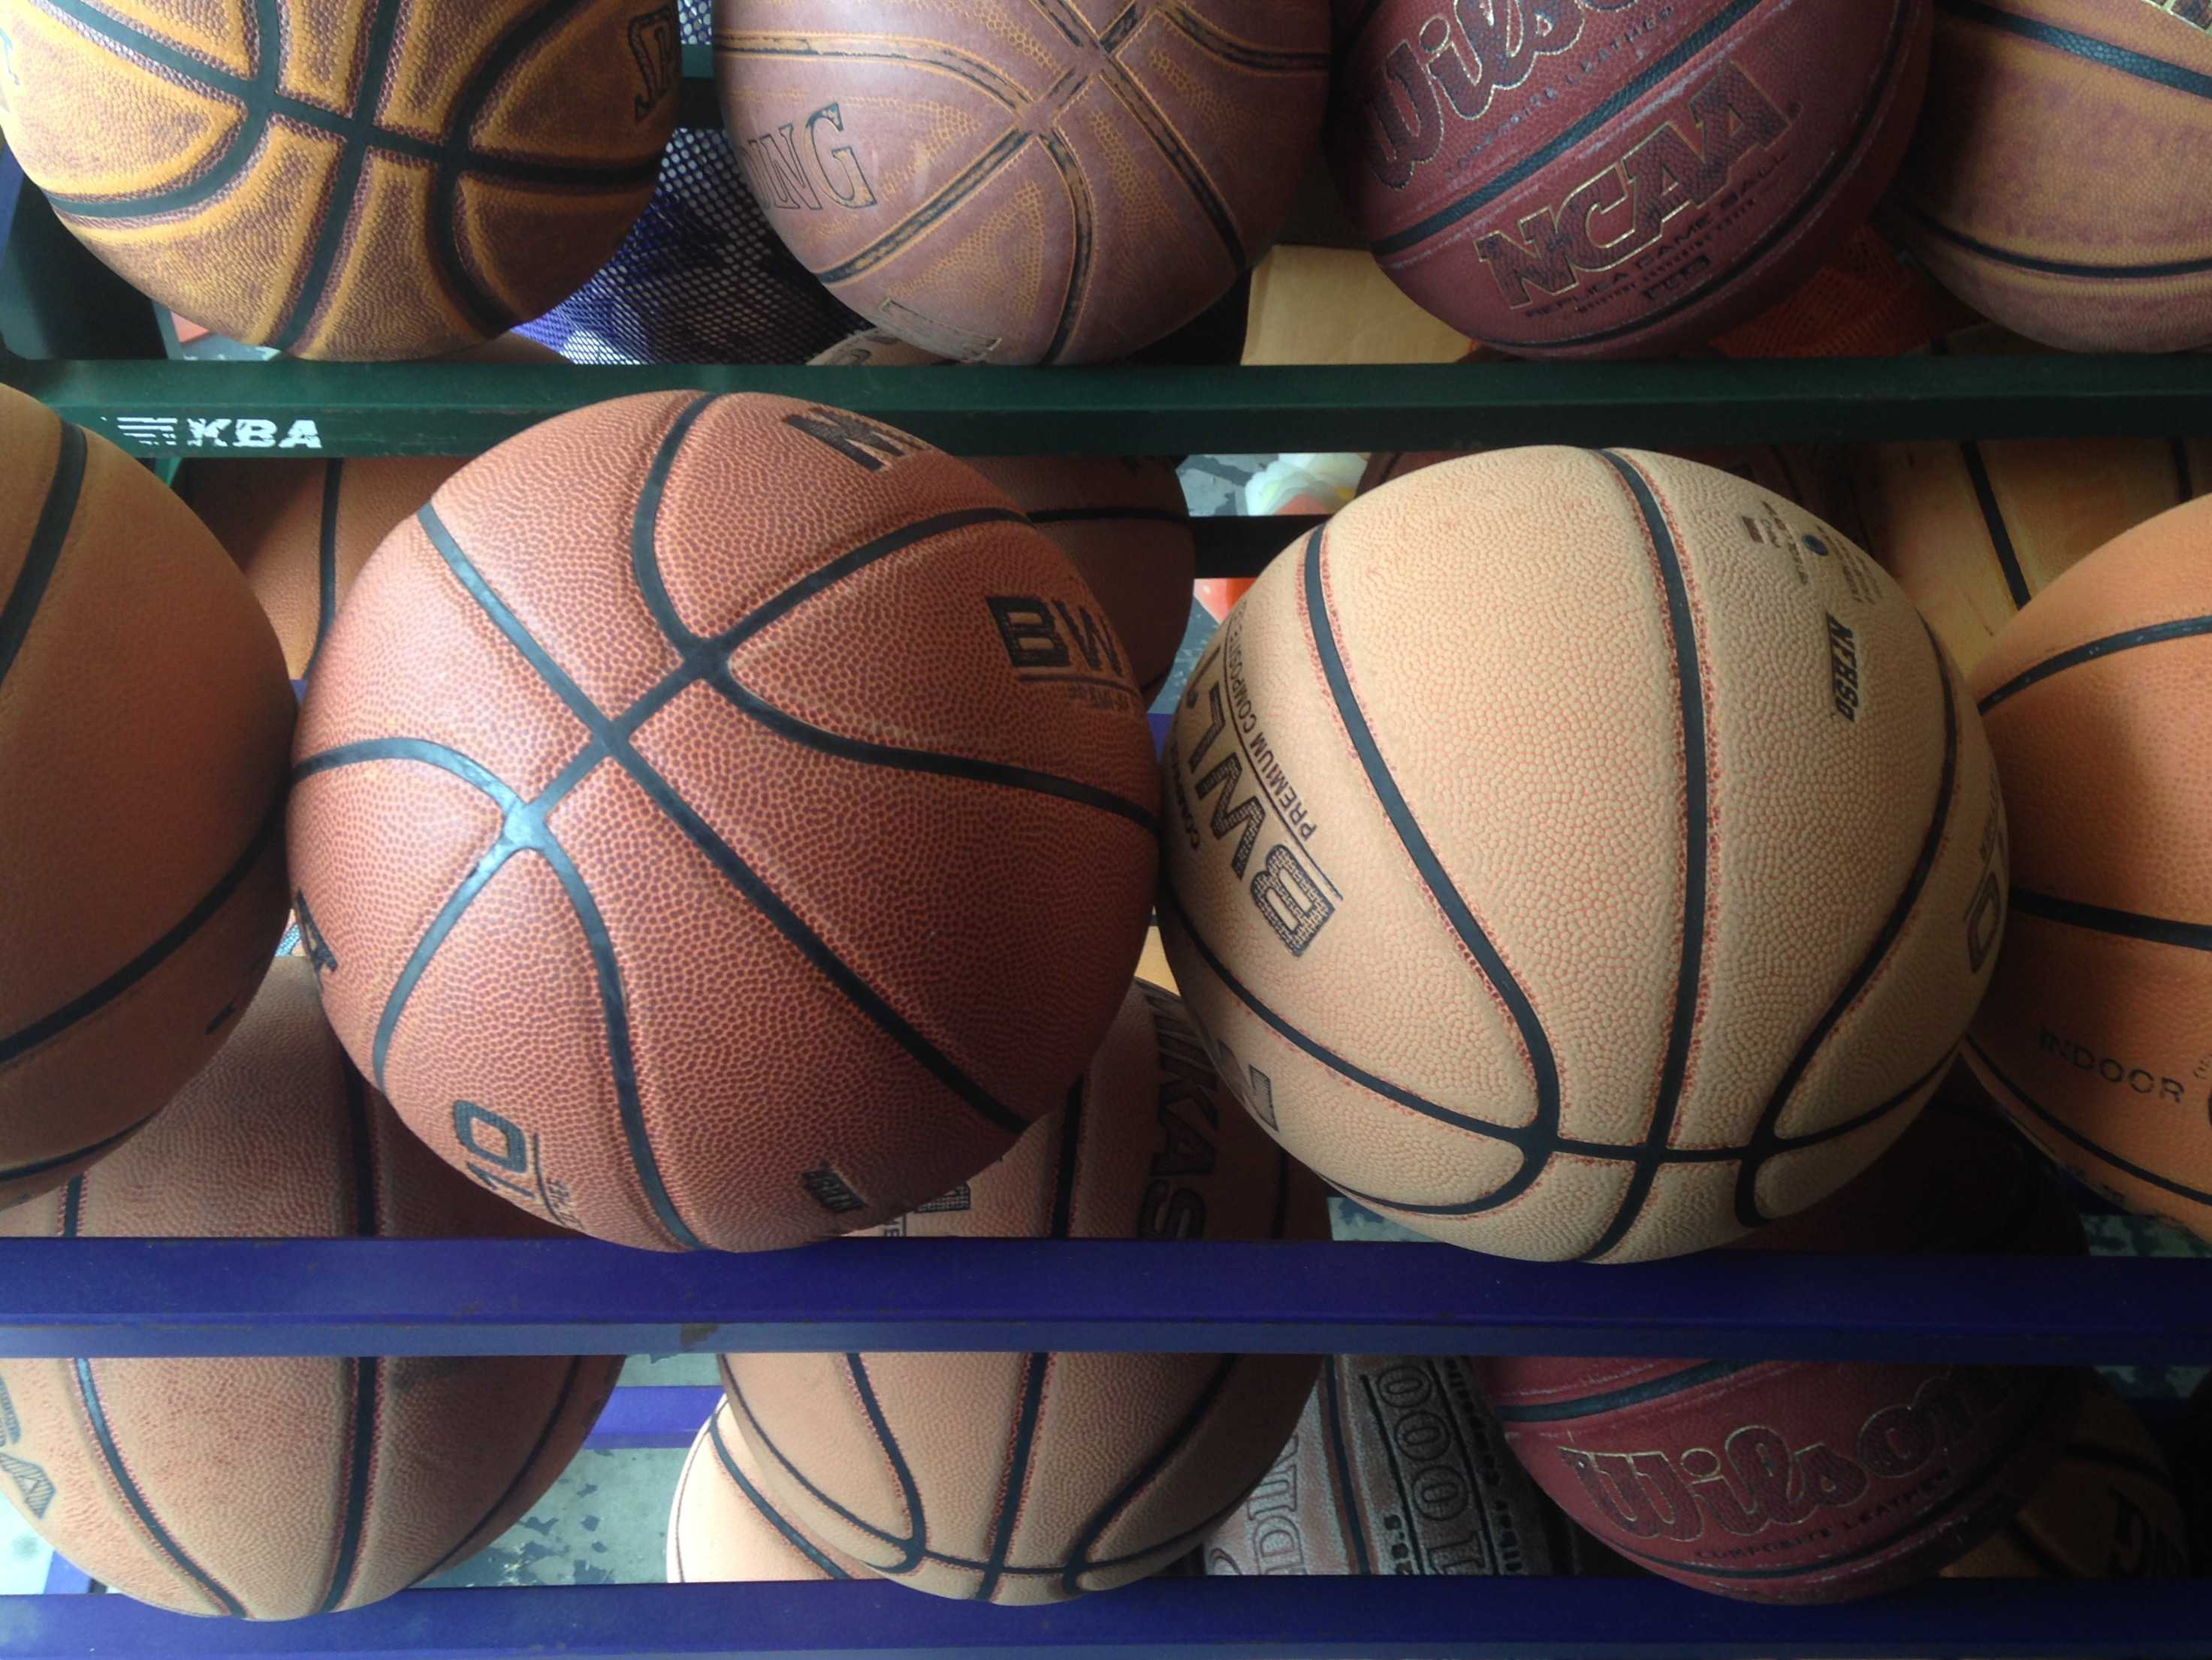 March Madness is the month long playoff that leads up to the Division I NCAA Men's Basketball Championship. In it, a starting sixty four college teams compete against one another— win or go home.